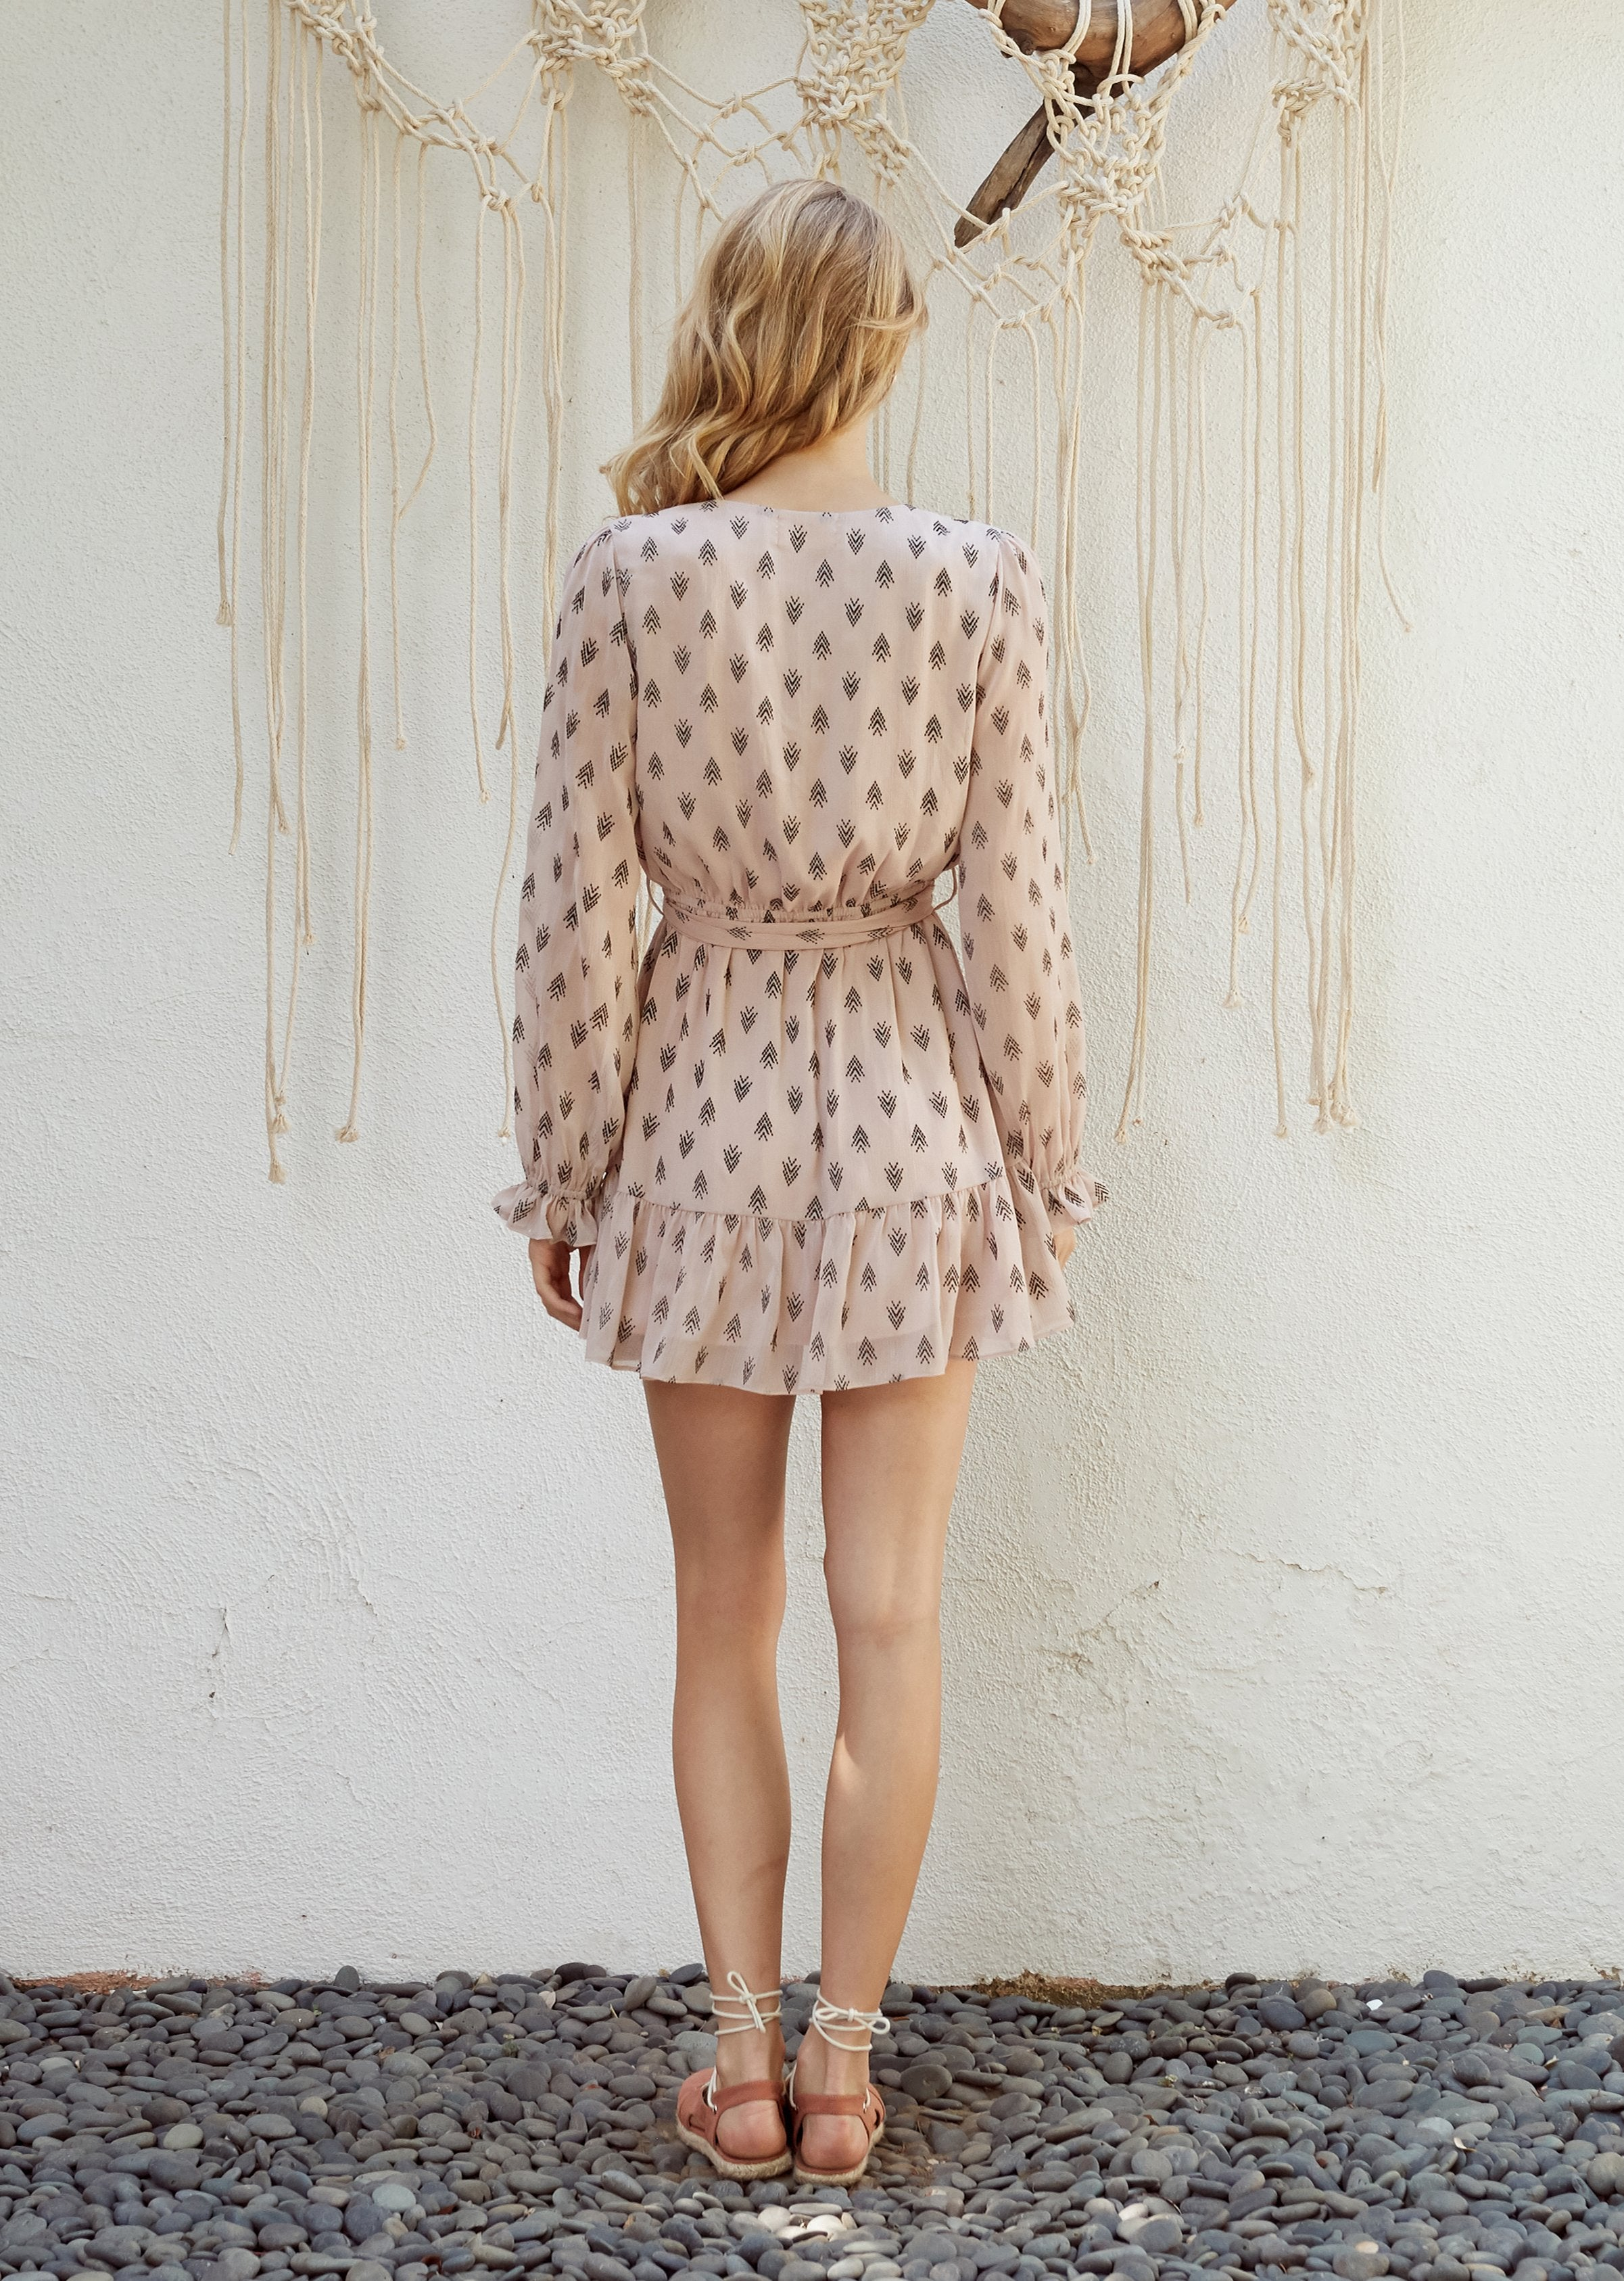 Lost + Wander Brooke Tie Dress